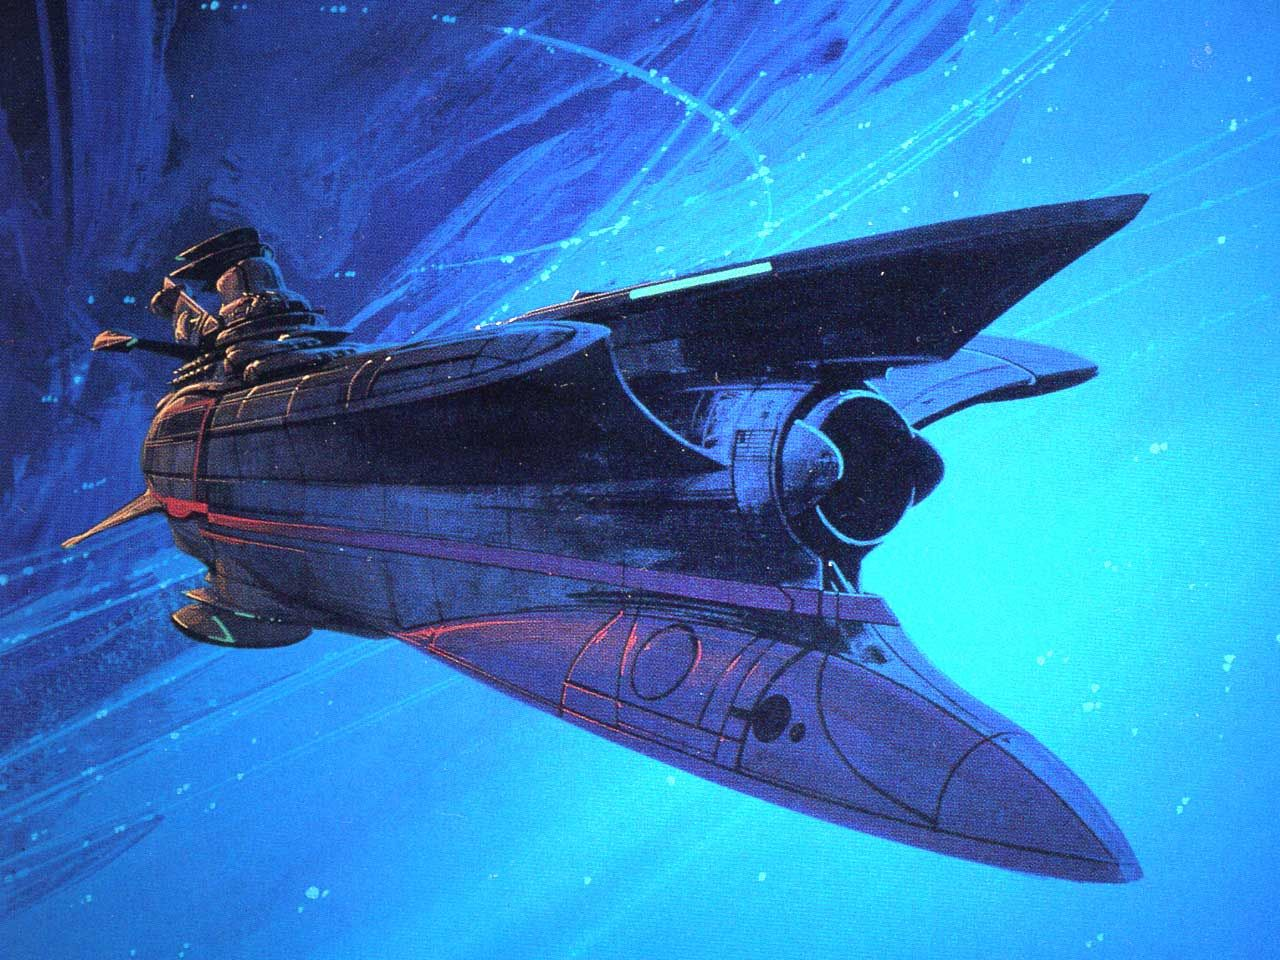 Syd Mead's concept art for the Yamato 2520 anime. Cool